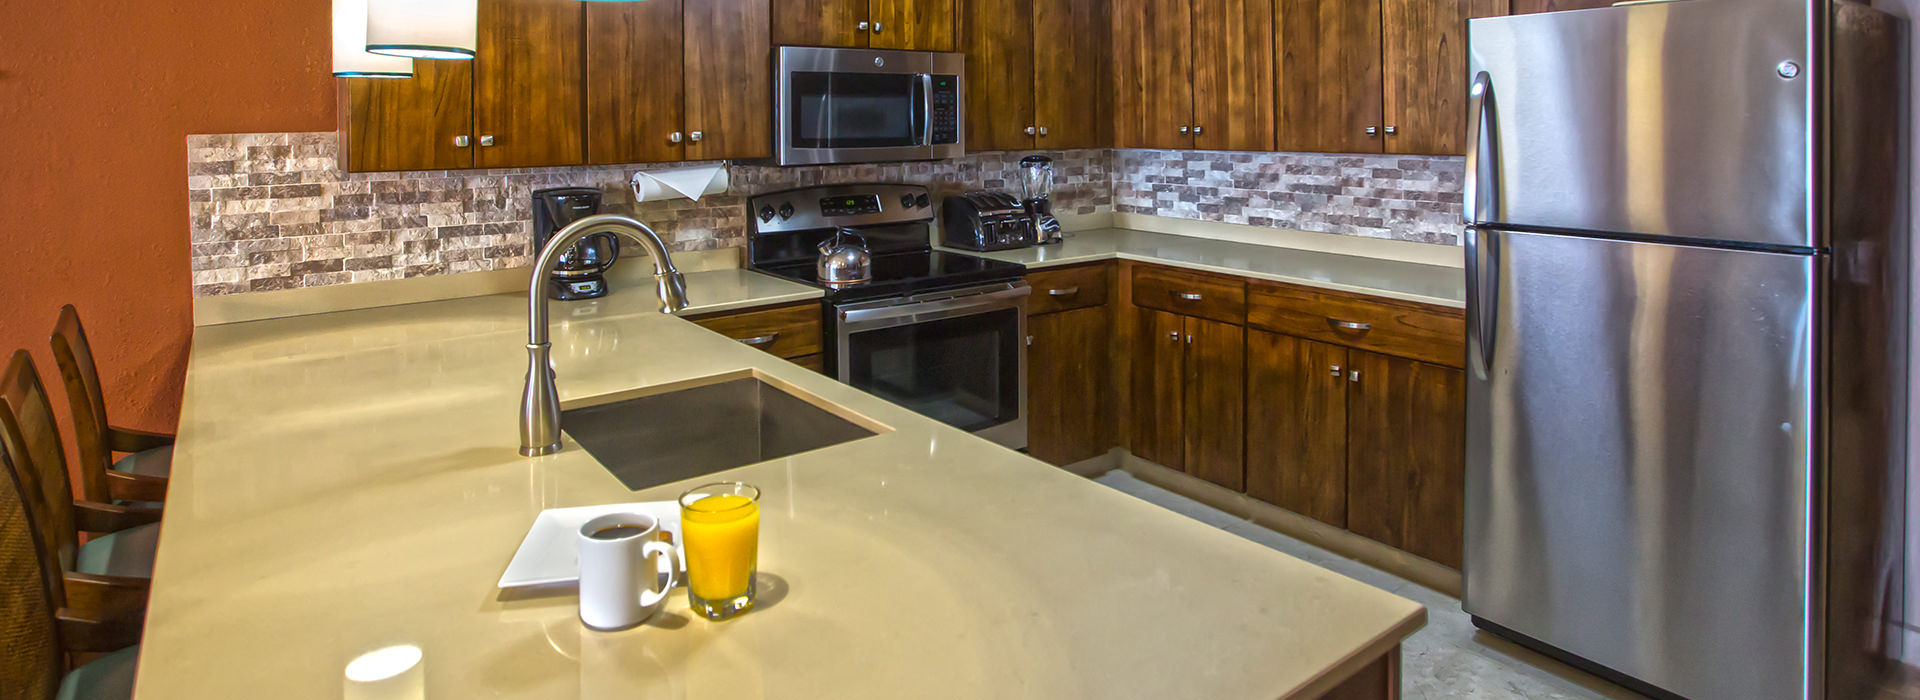 simpson bay beach resort and marina ample suites